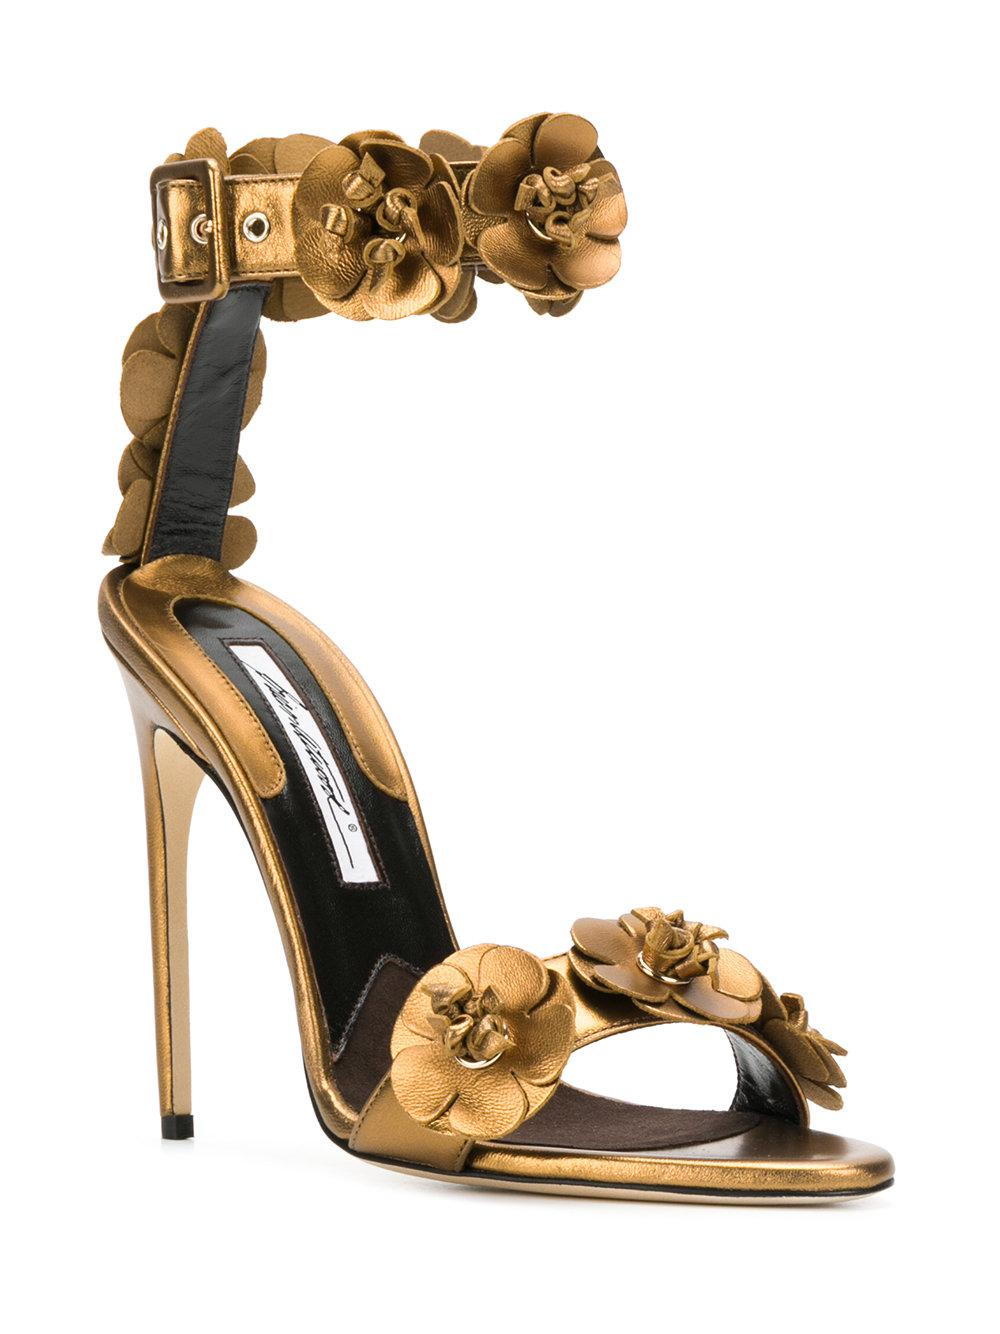 3a1ca3b52ee4d1 Brian Atwood 3d Flower Detail Sandals in Brown - Lyst